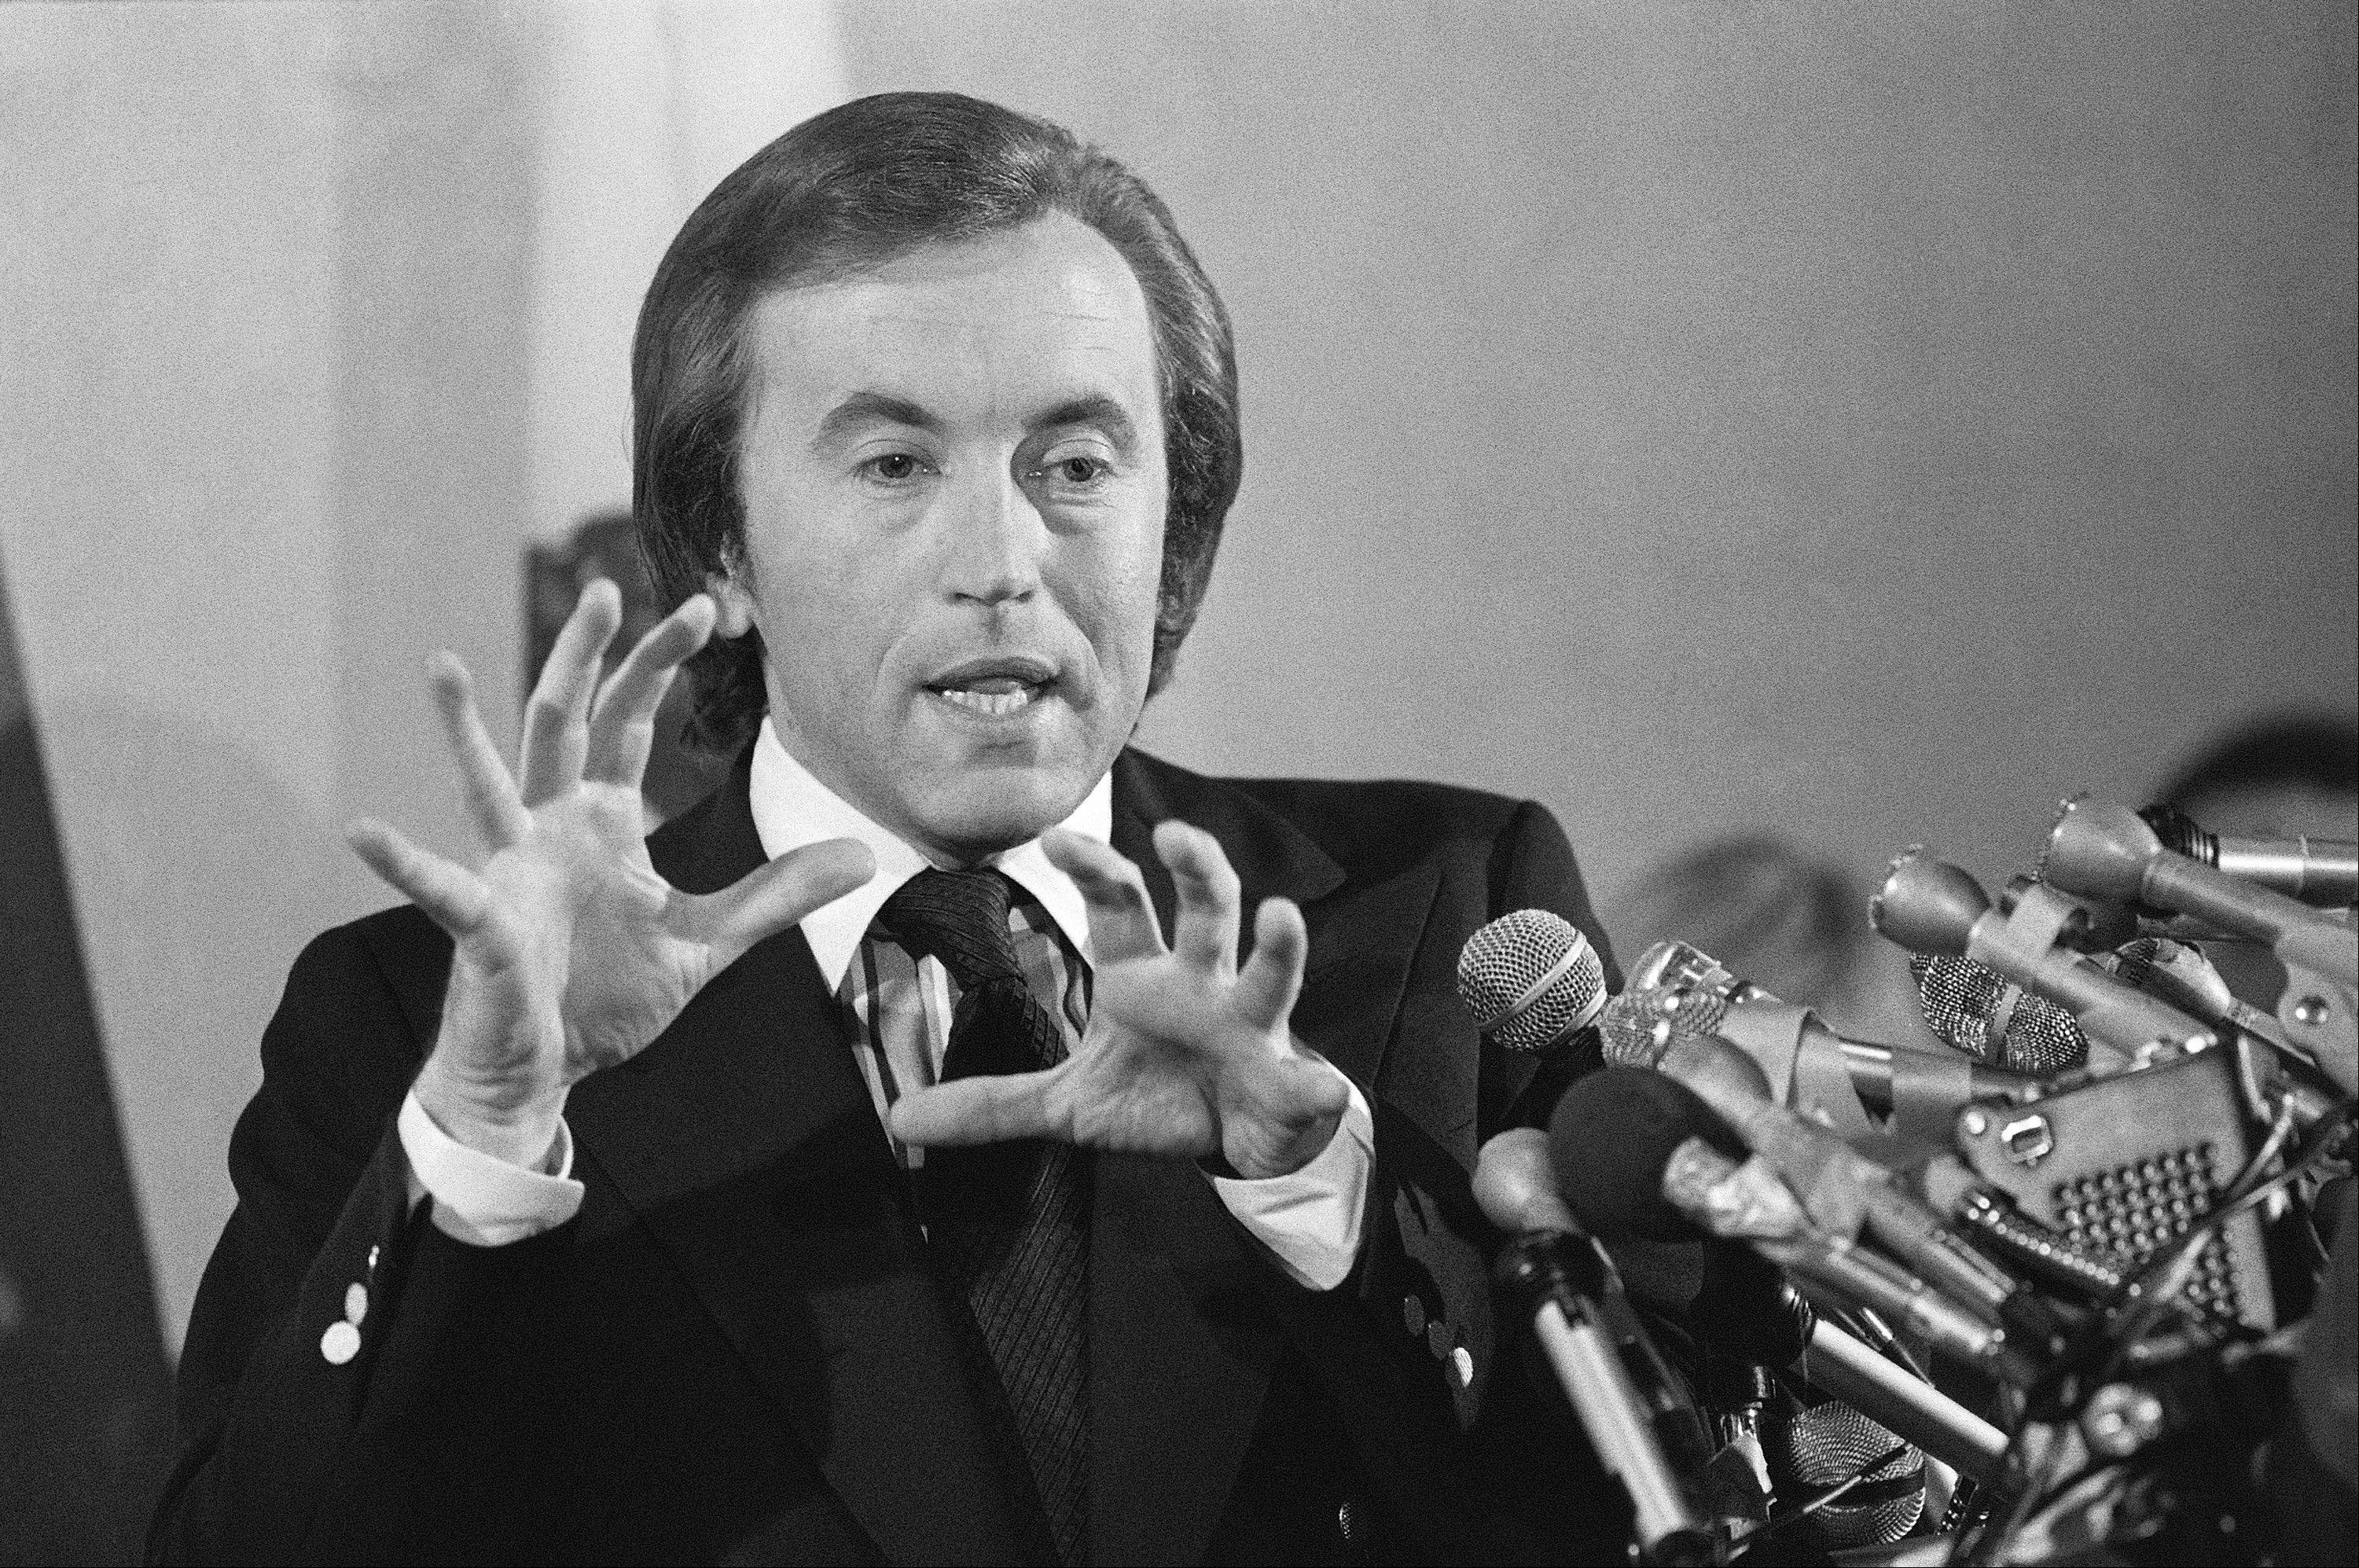 In this May 5, 1977 file photo, David Frost speaks at a news conference about the telecast of the Nixon-Frost interview in Beverly Hills, Calif. Frost, a veteran broadcaster who won fame around the world for his interview with former President Richard Nixon, died Aug. 31, 2013. He was 74.